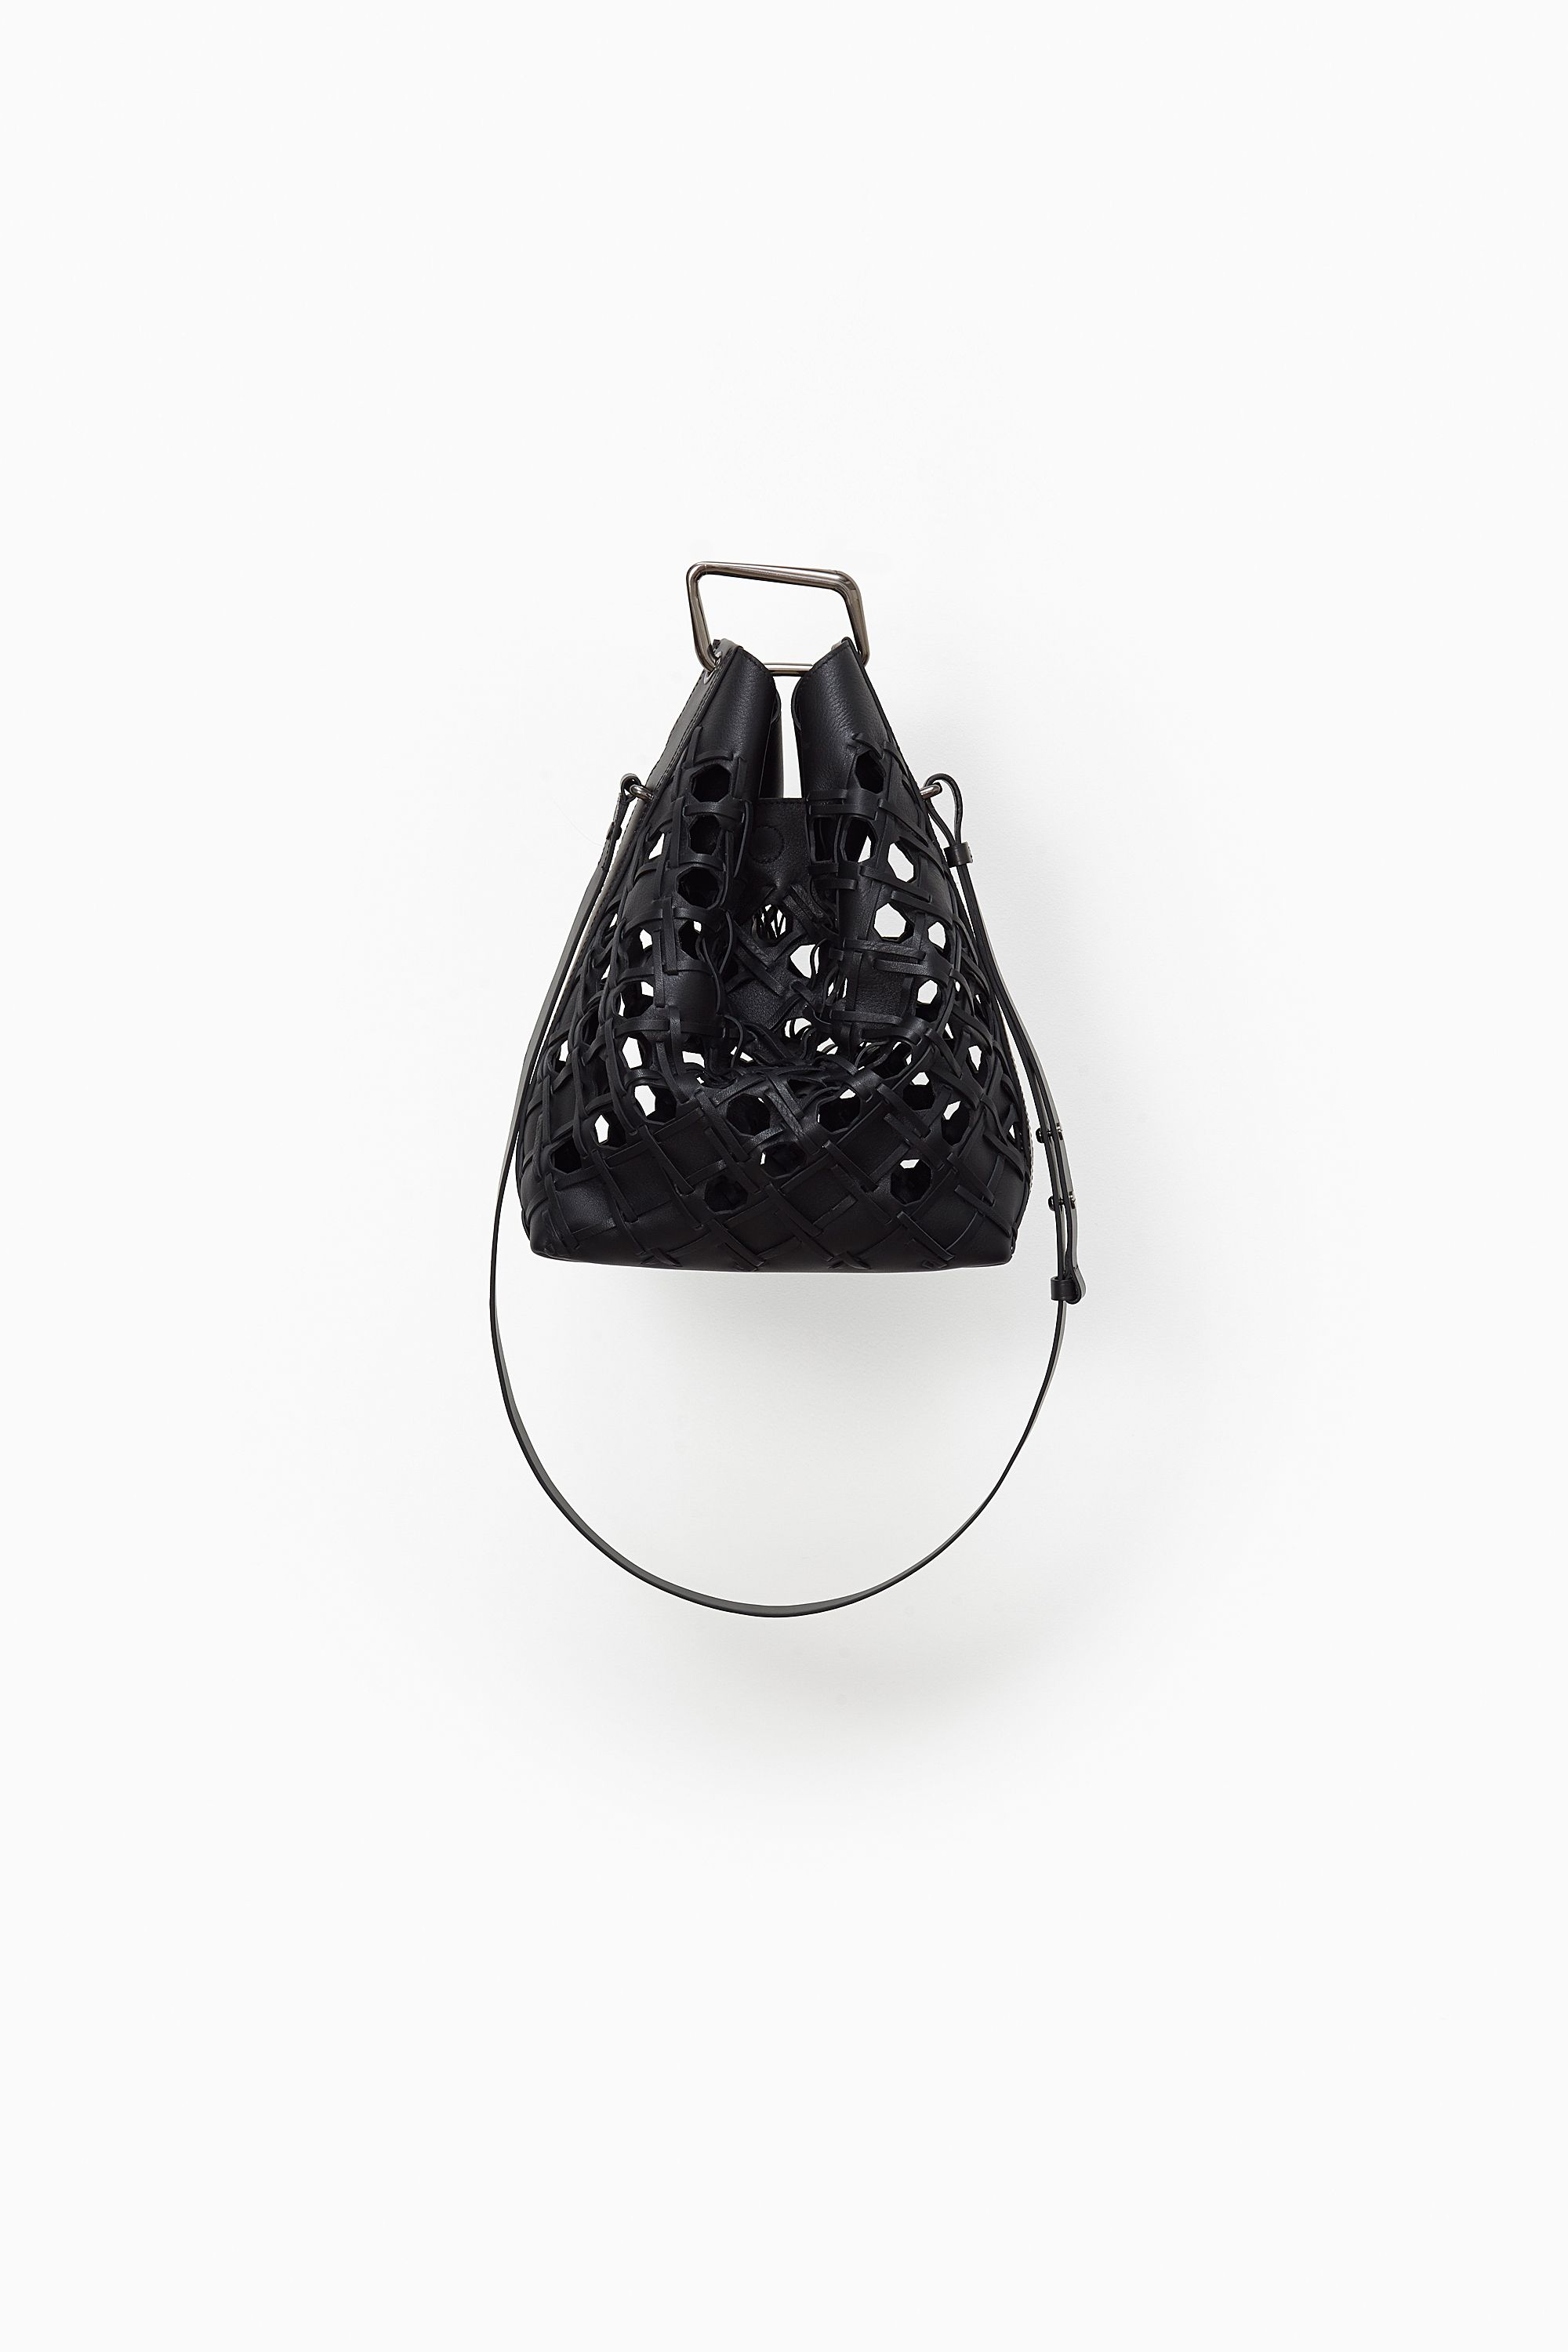 "3.1 Phillip Lim Bucket Bag, $1,395; <a target=""_blank"" href=""https://www.31philliplim.com/shop/quill-bucket-bag-1177.html"">31philliplim.com</a>"